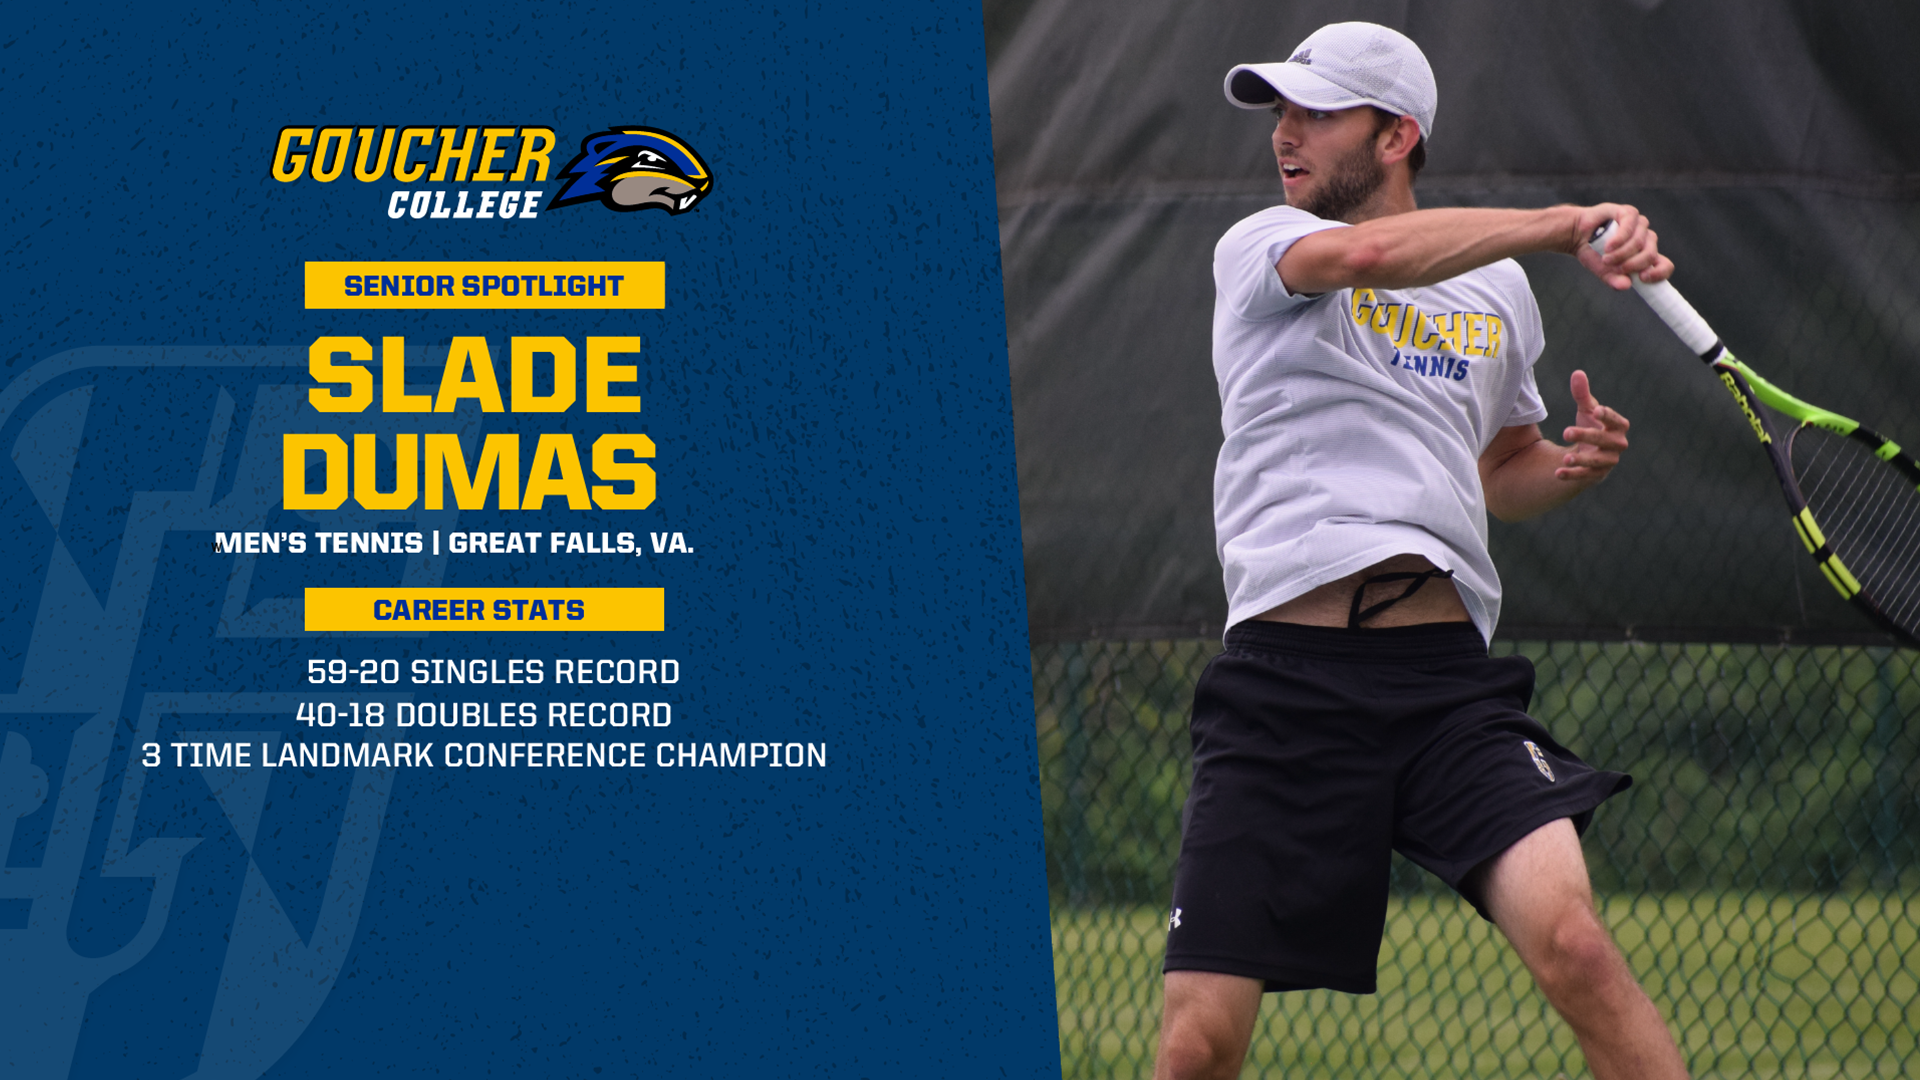 Senior Spotlight: Men's Tennis Slade Dumas